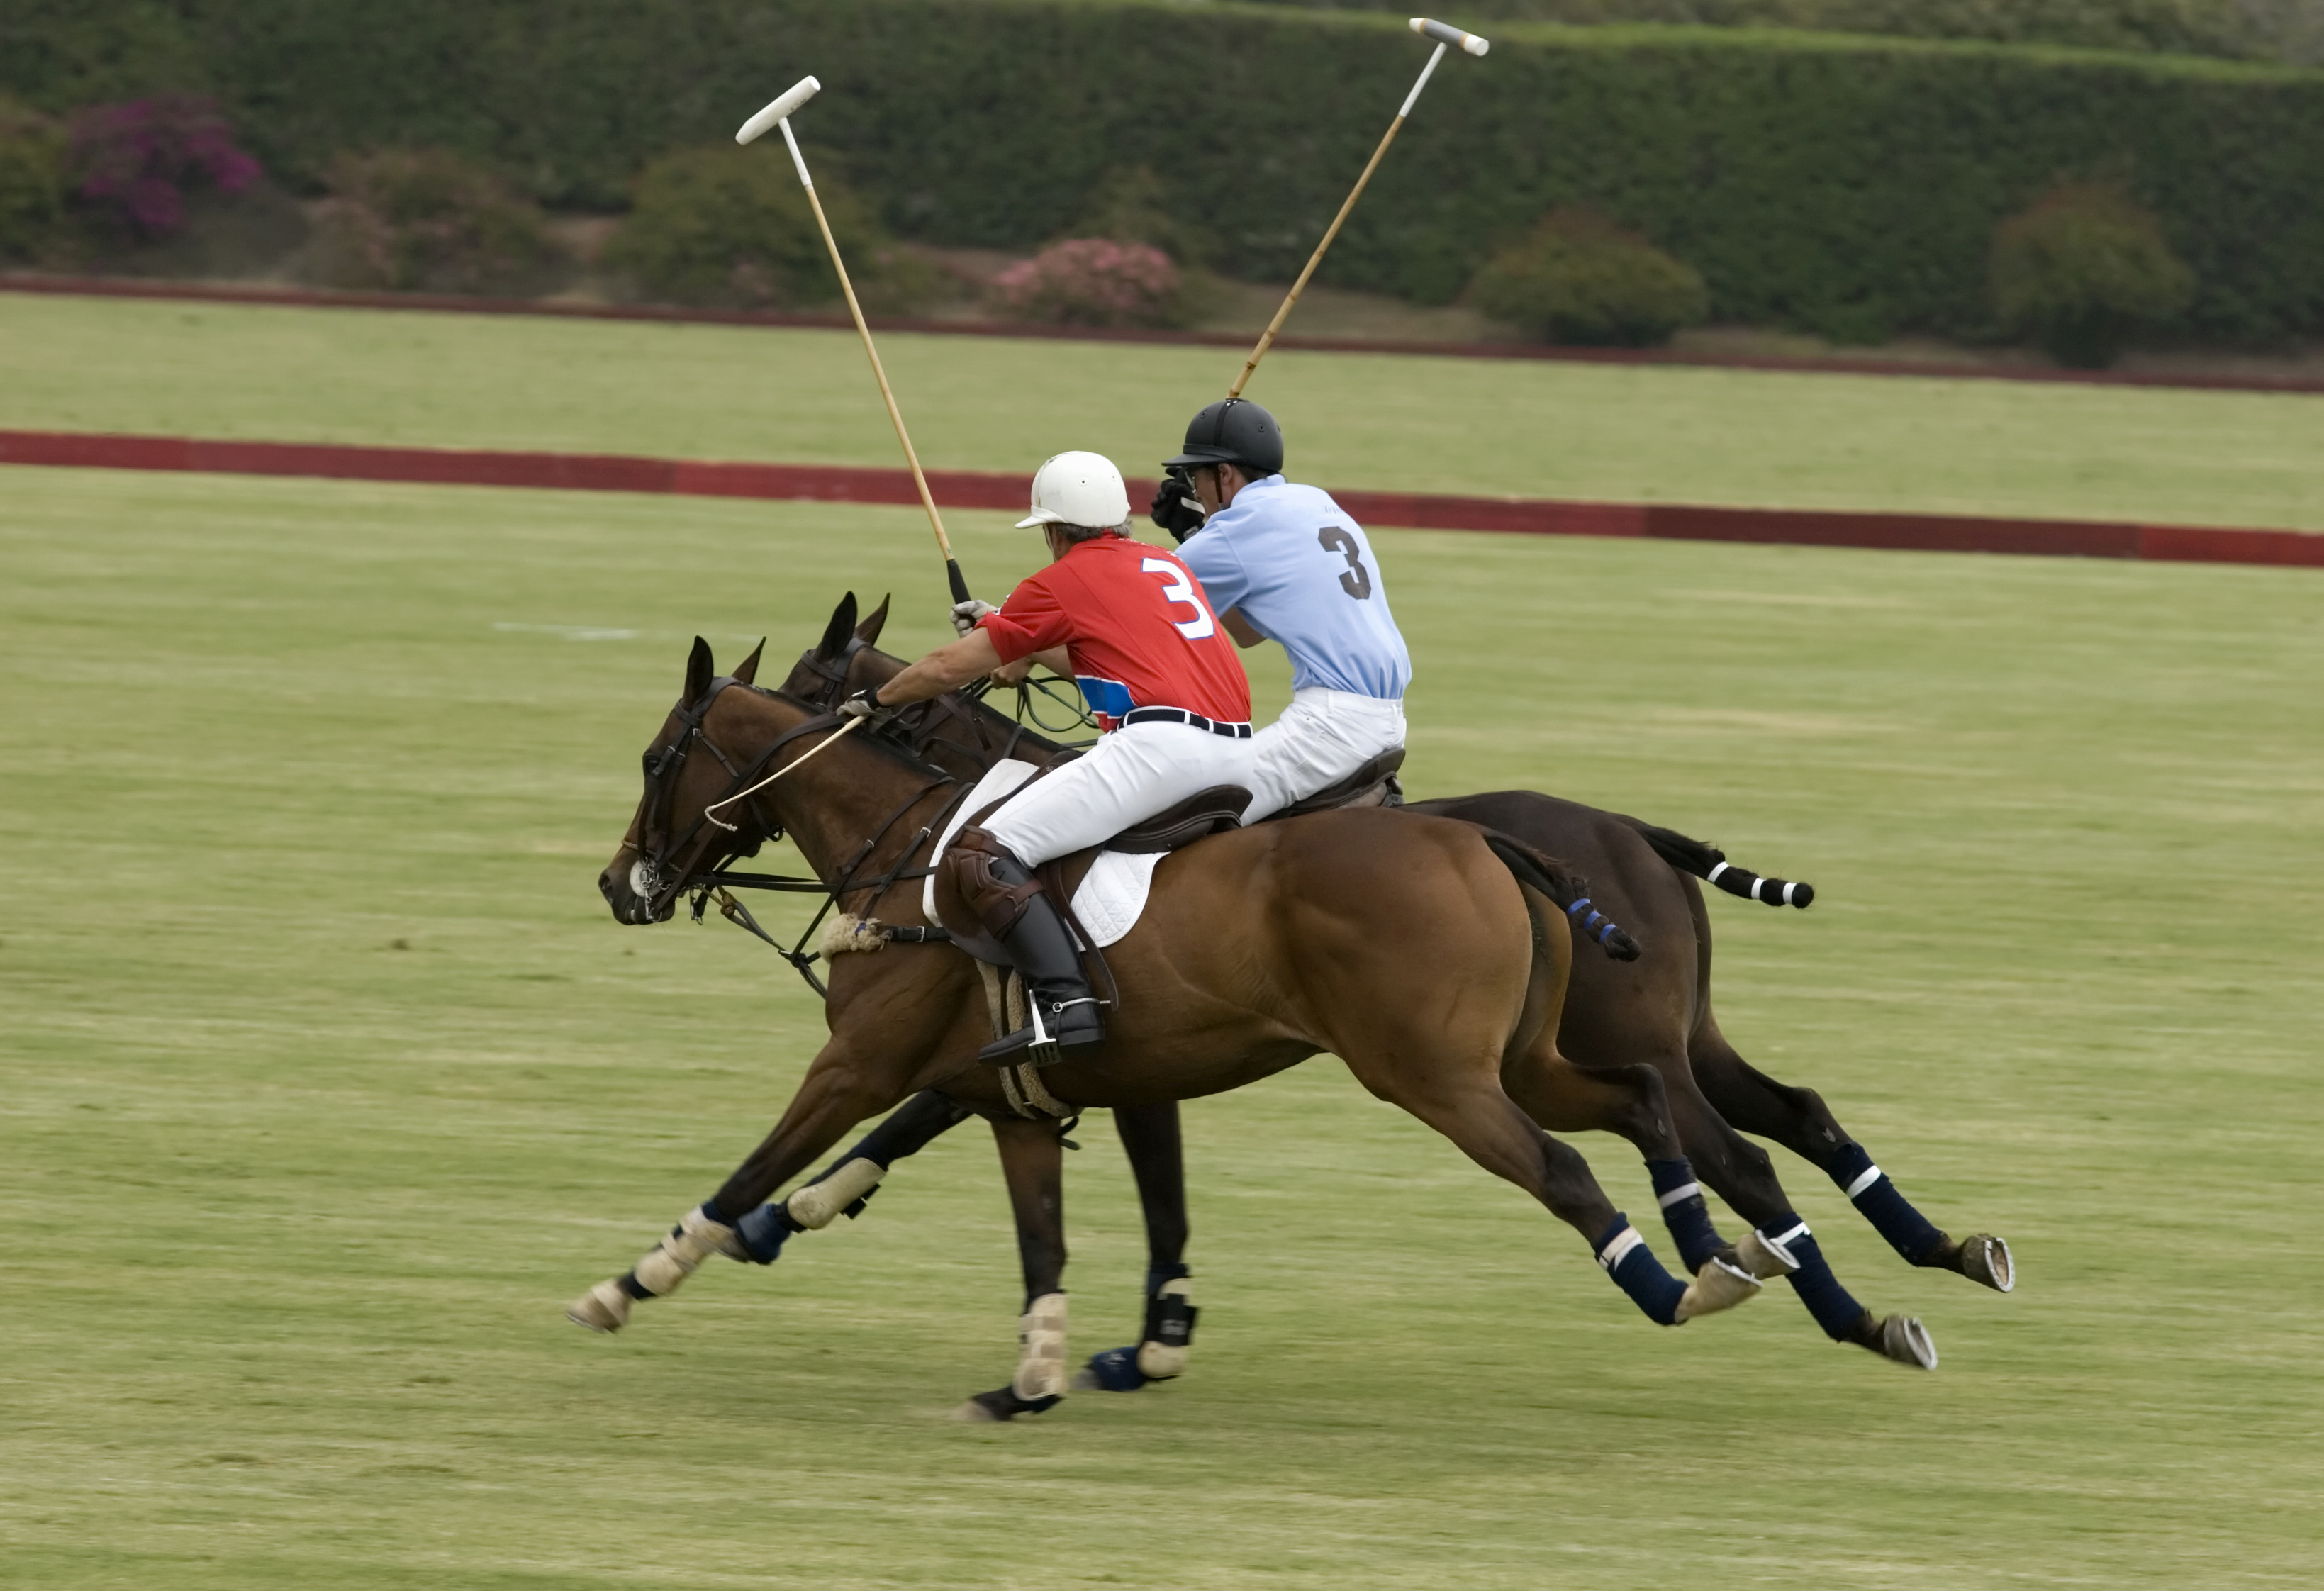 People in The Dalles love playing Polo